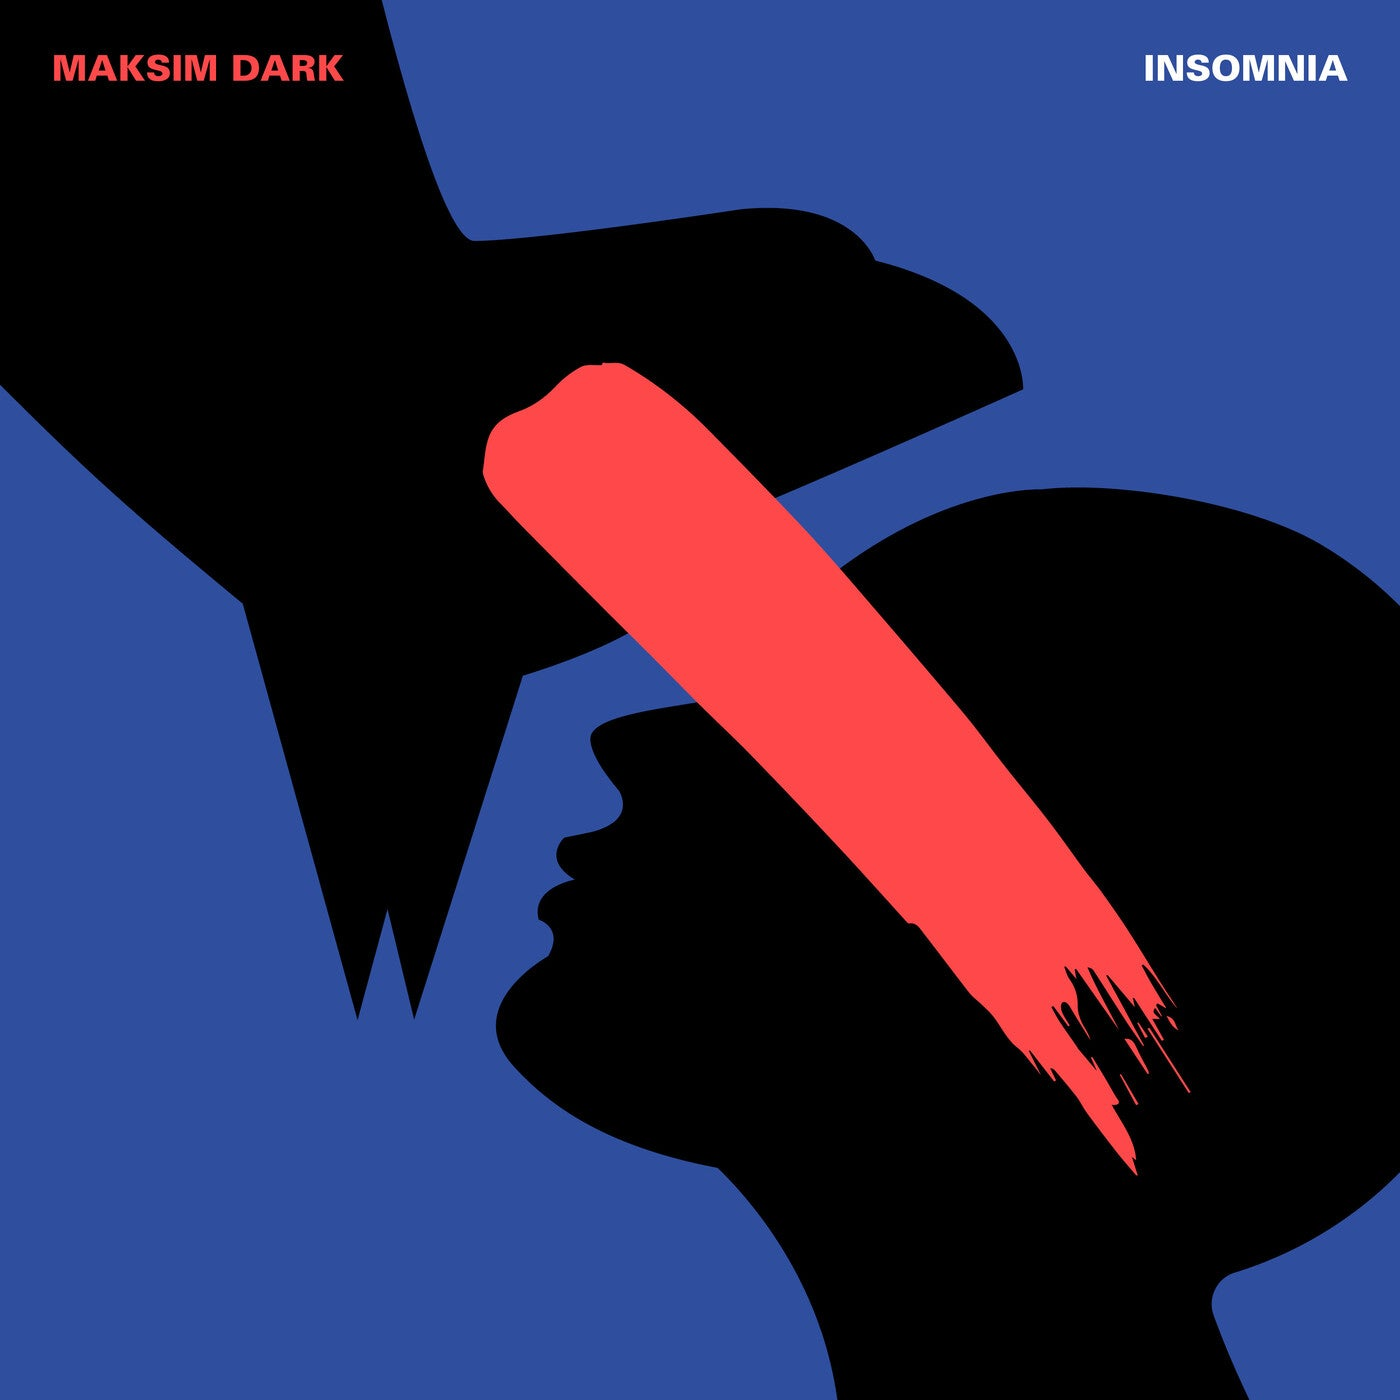 Download Insomnia on Electrobuzz